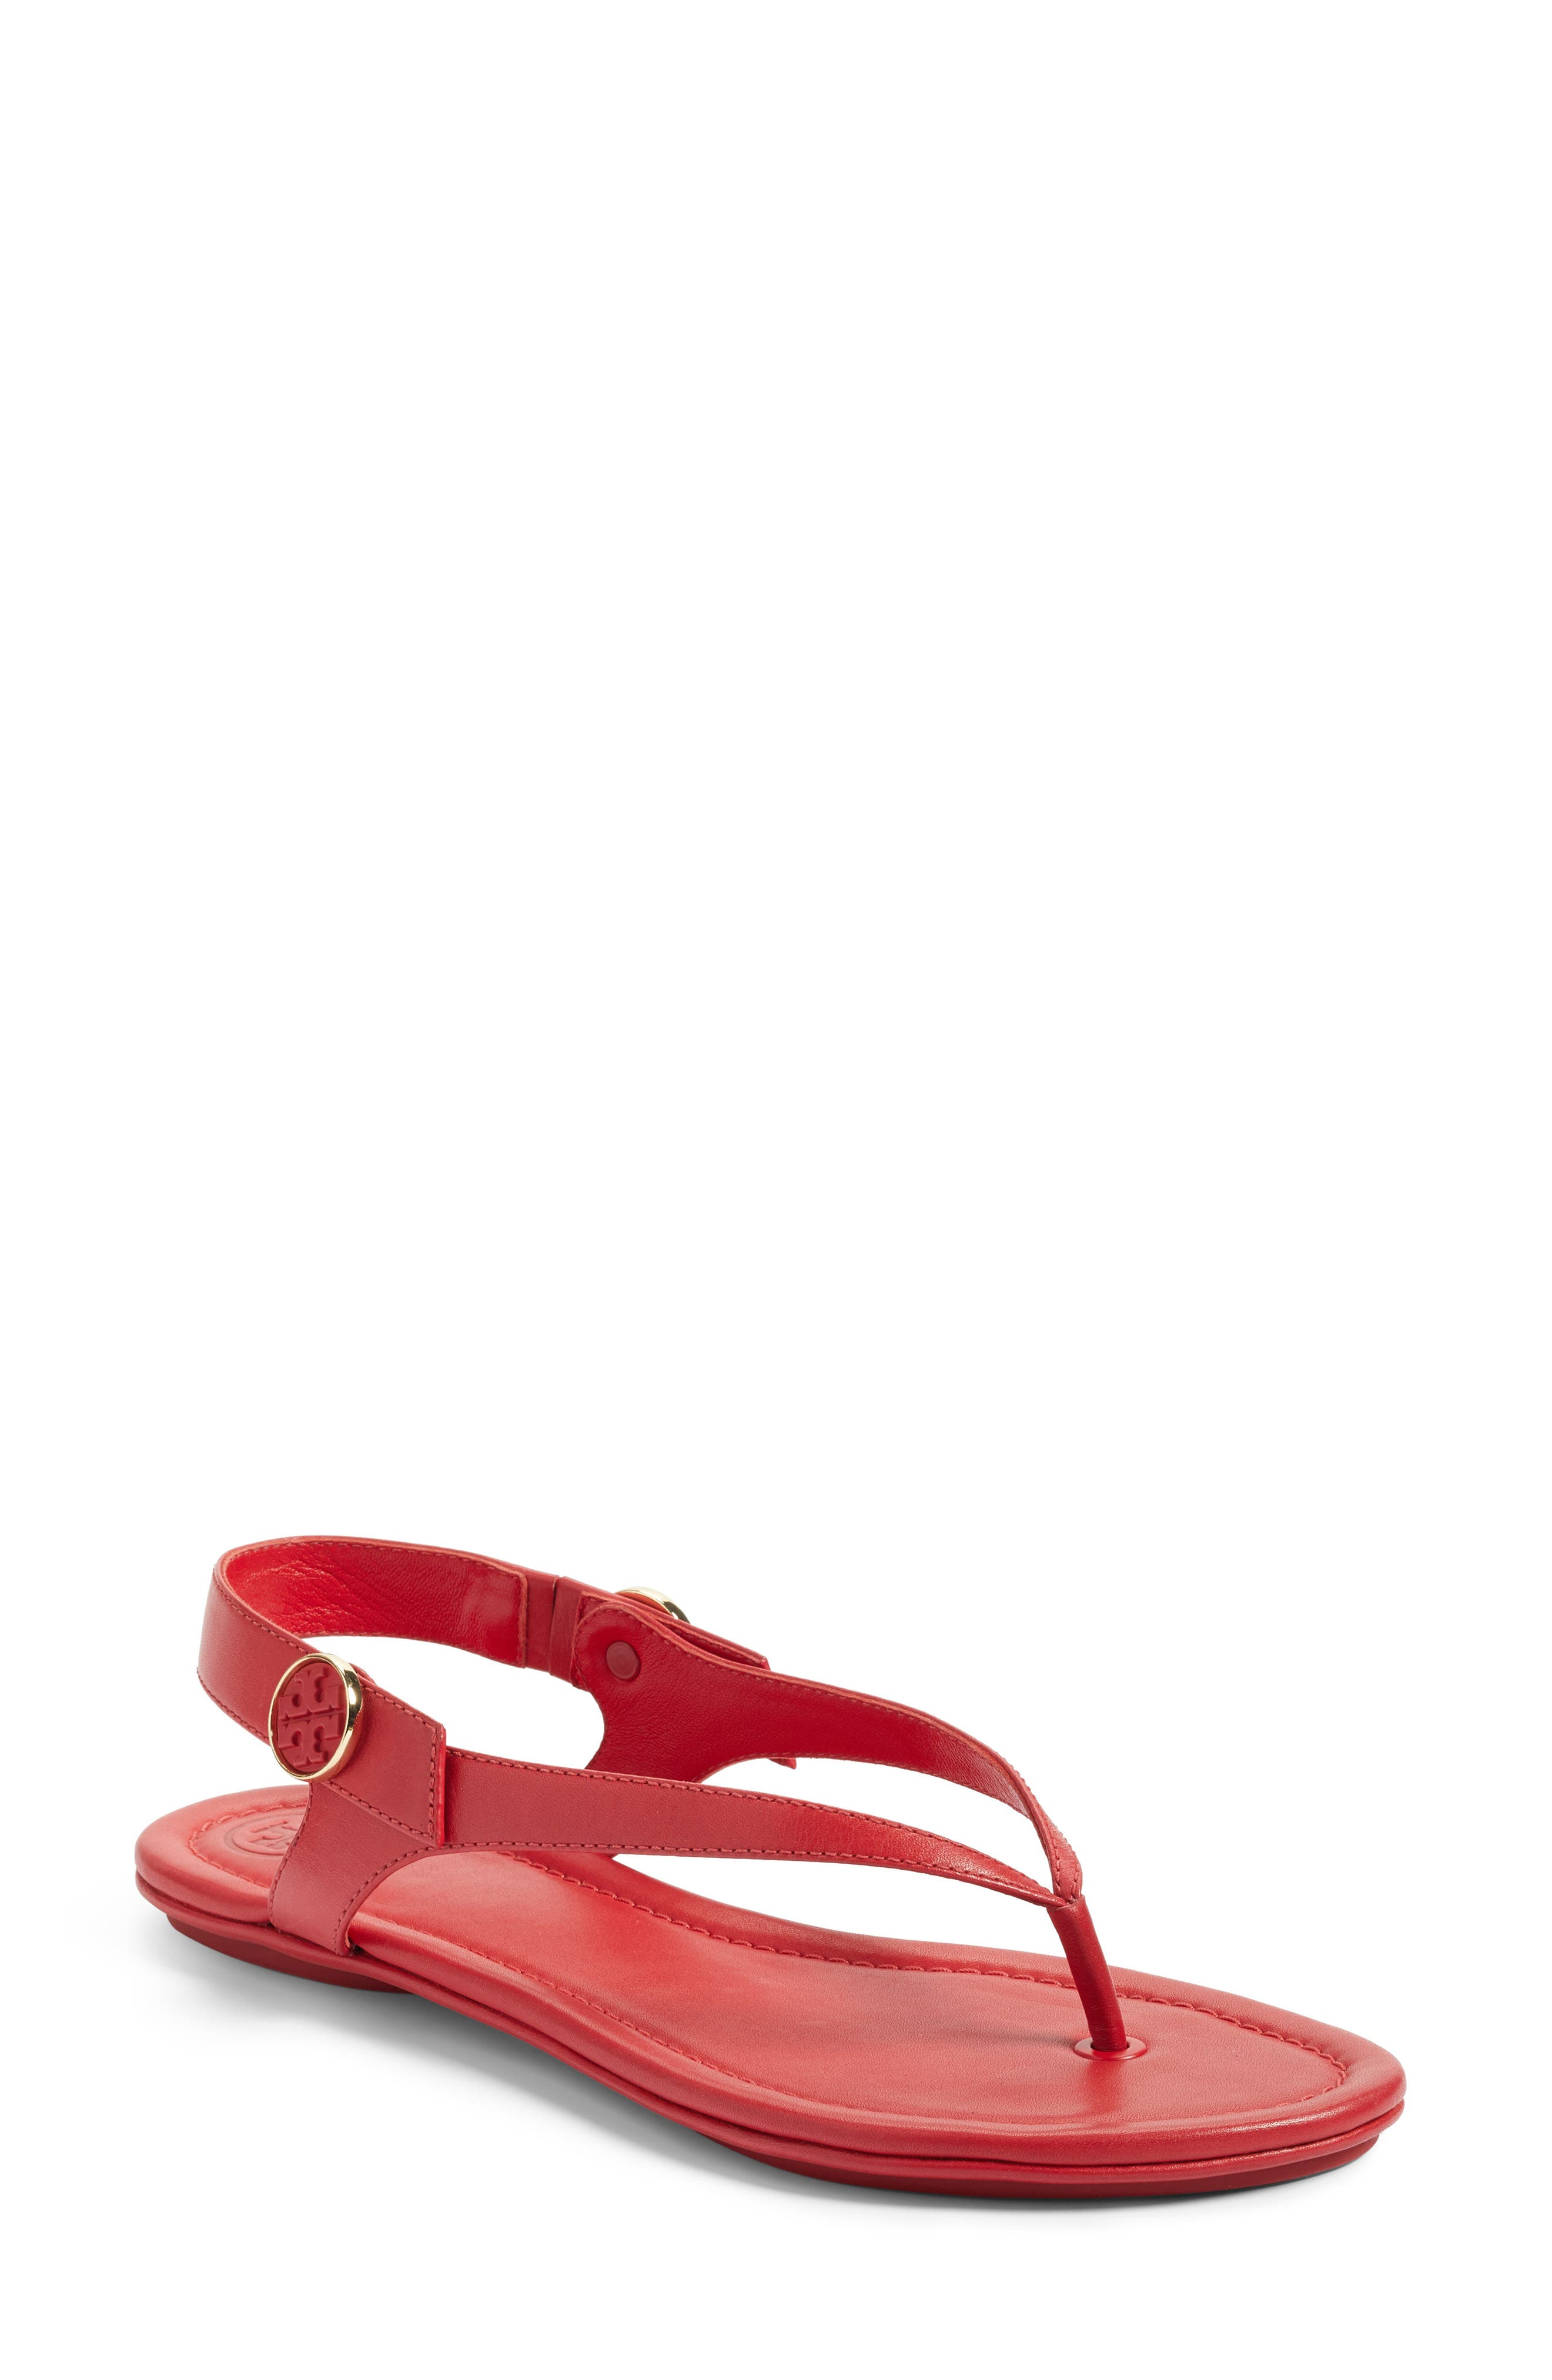 Alternate Image 1 Selected - Tory Burch Minnie Travel Thong Sandal (Women)